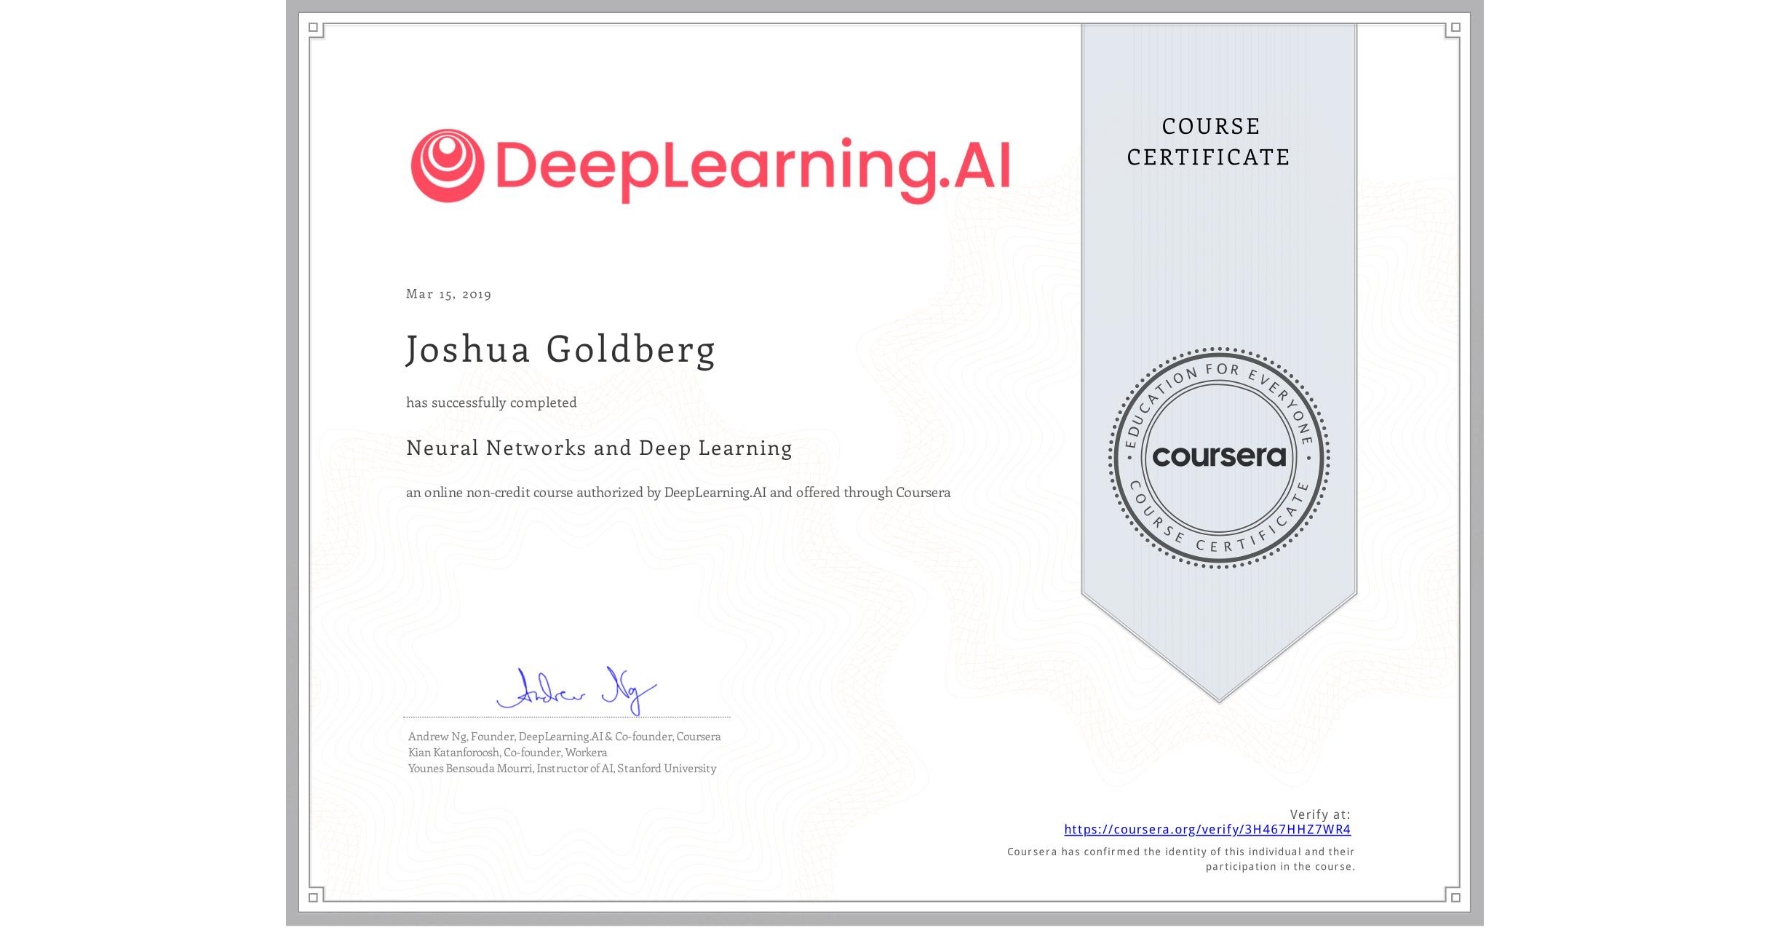 View certificate for Joshua Goldberg, Neural Networks and Deep Learning, an online non-credit course authorized by DeepLearning.AI and offered through Coursera